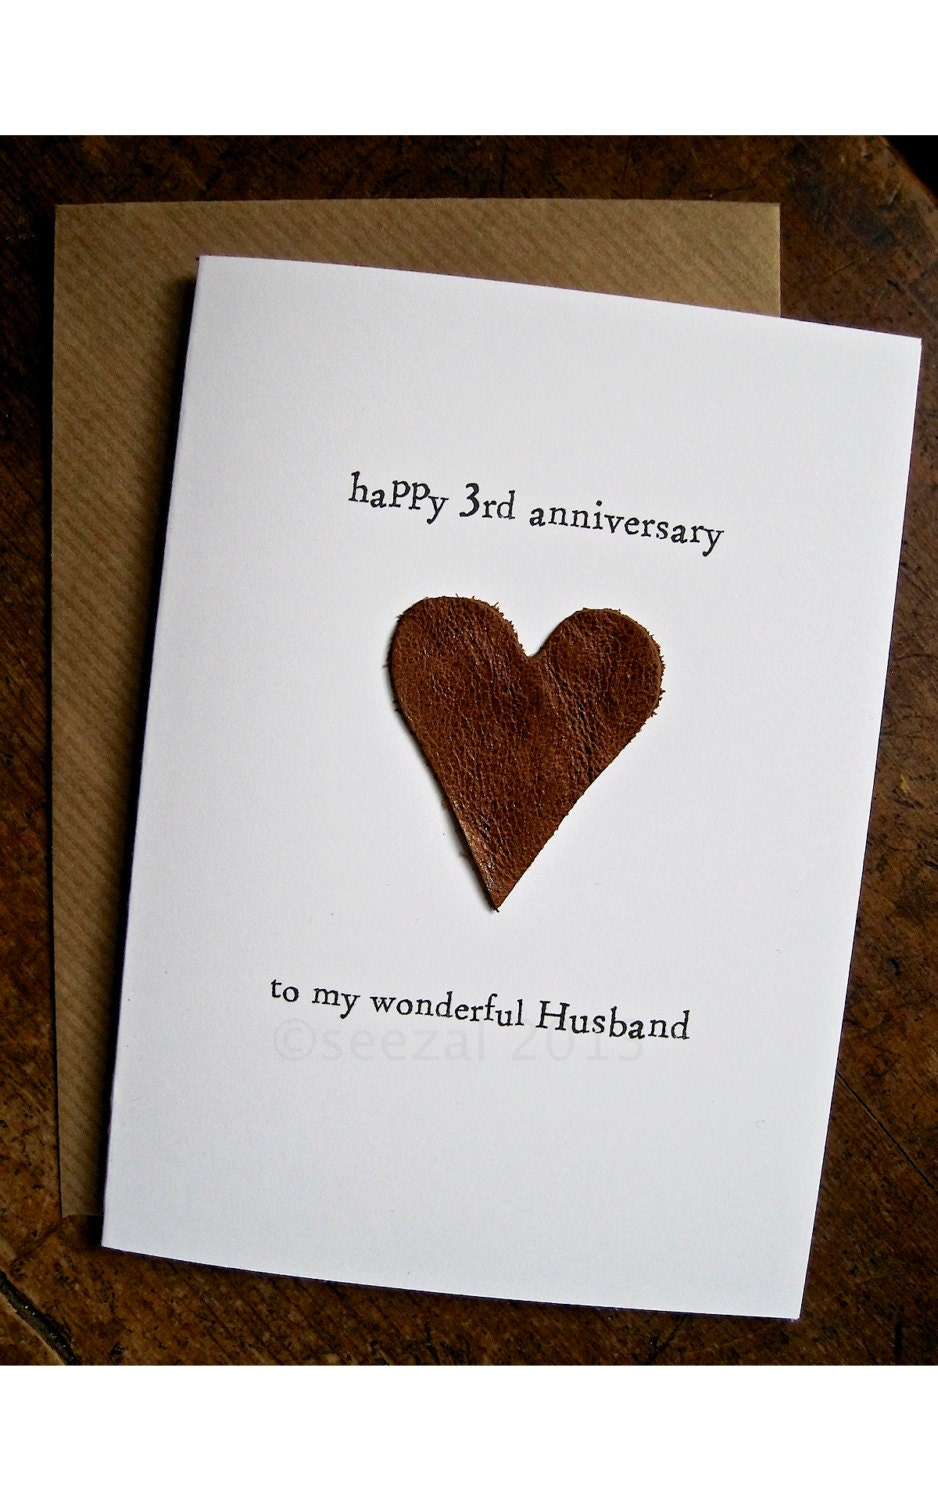 3 Wedding Anniversary Gift Ideas : Ideas Leather Gifts For 3rd Wedding Anniversary 3rd wedding ...